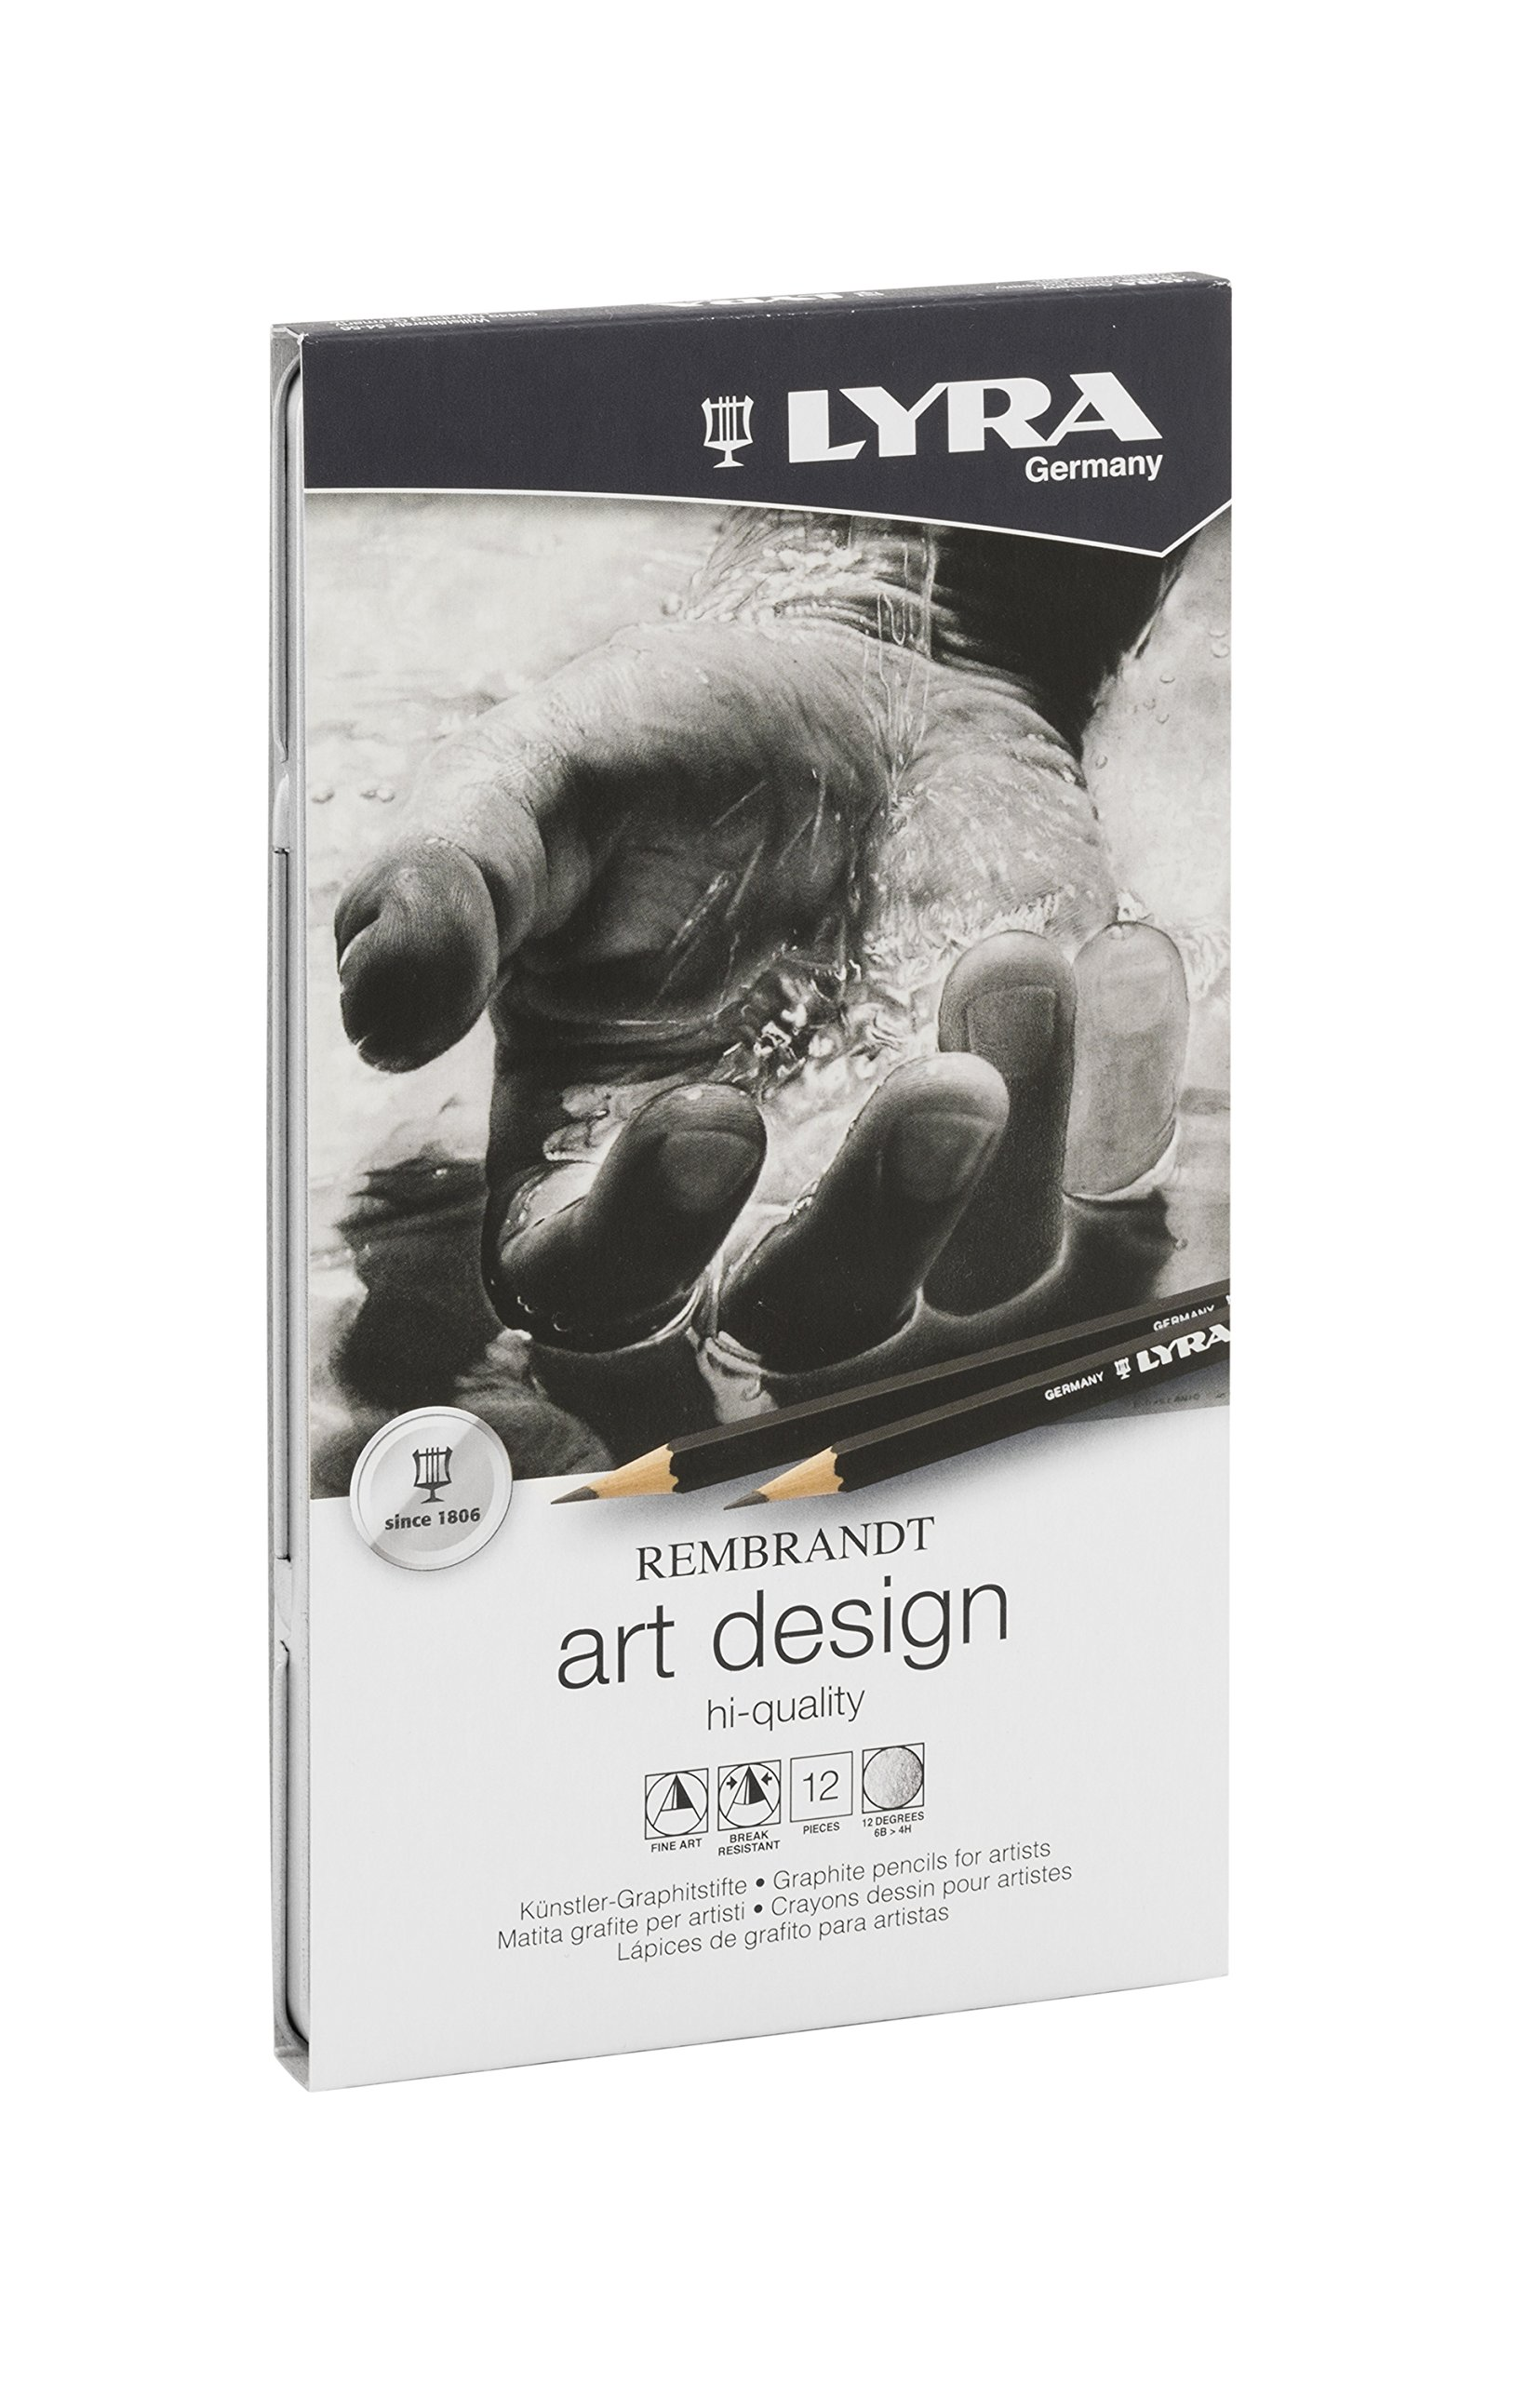 LYRA Rembrandt Art Design Drawing Pencils, Set of 12 Pencils, Assorted Degrees (1111120) by Lyra